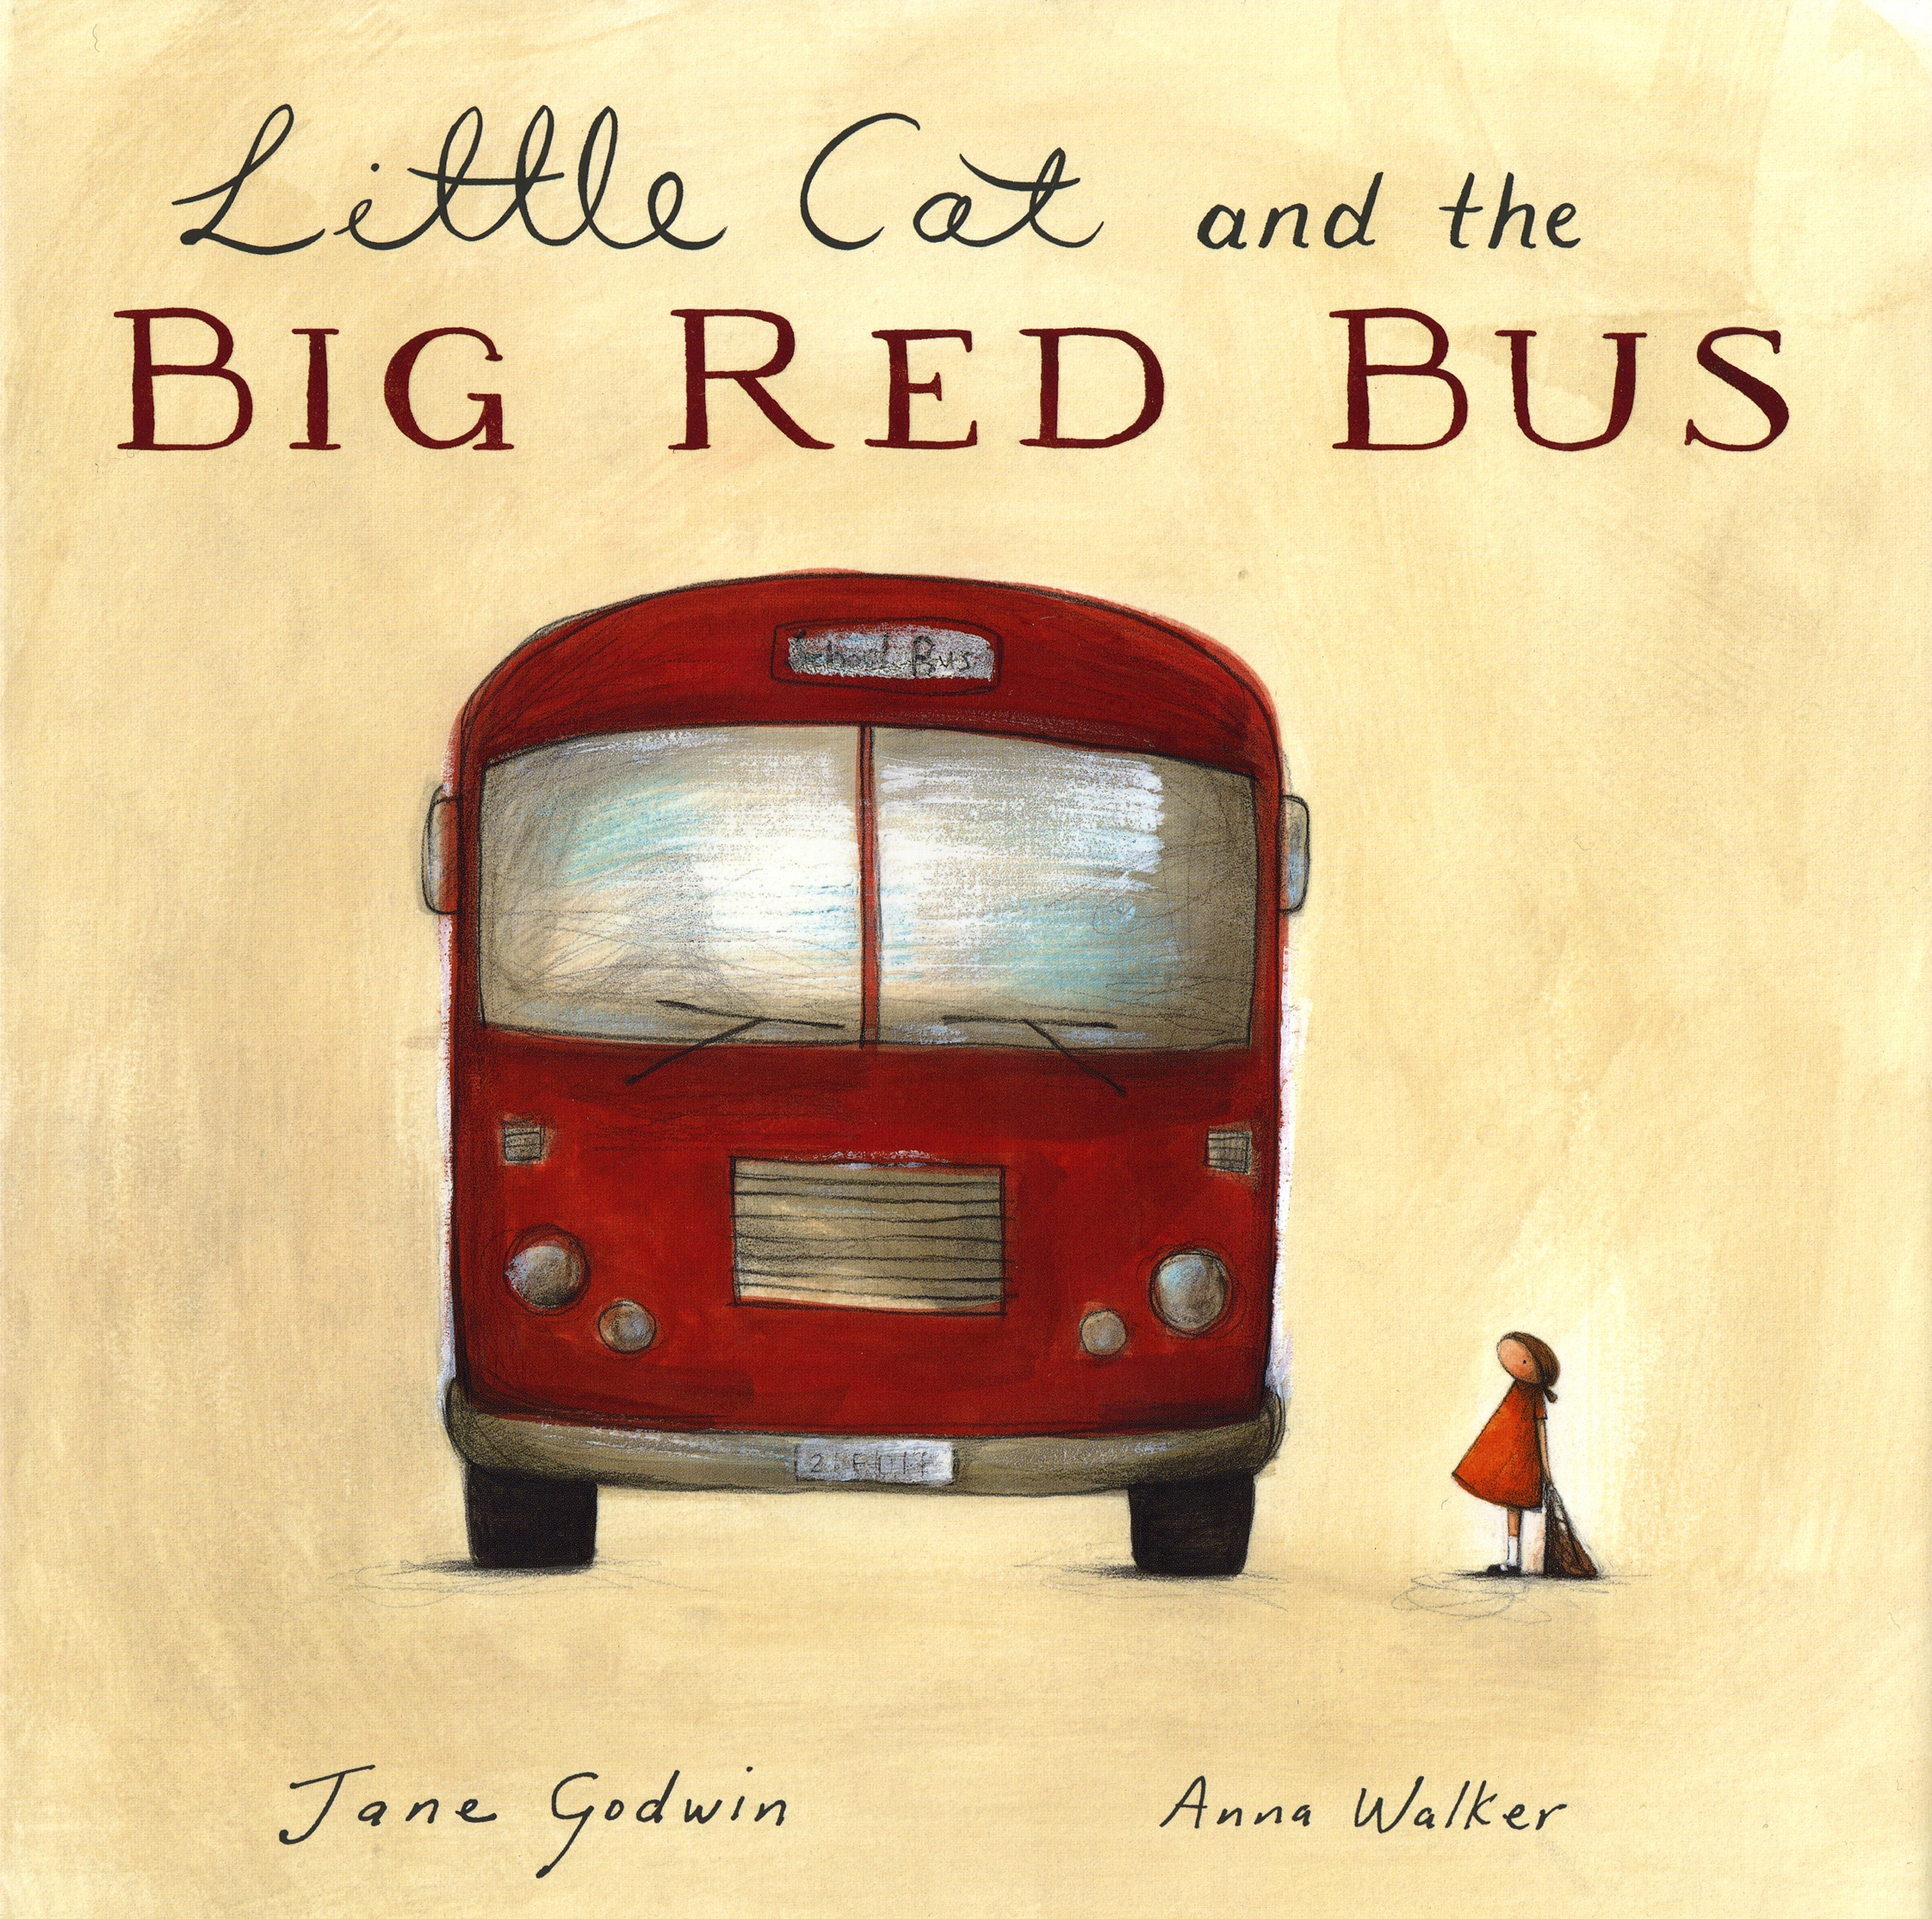 Little Cat and the Big Red Bus (illustrated by Anna Walker)  2008   Little Cat and the Big Red Bus   I used to visit lots of schools in the country and sometimes we'd talk about different experiences we'd had.    We talked about funny things, and unusual things, and embarrassing things, and sometimes scary things.    In the country, some of the kids lived quite a way from the school and they would spend a lot of time on the bus.    Everyone now and then, one of them would tell me about how he or she had fallen asleep on the bus, and this was where the idea for this story came from.        Little Cat and the Big Red Bus  was the first book I worked on with Anna.    When I showed her the story and asked if she would be interested in illustrating it, she said that she loved the story but she couldn't draw buses!    I'm glad she agreed to do it, and I think her buses are quite beautiful!